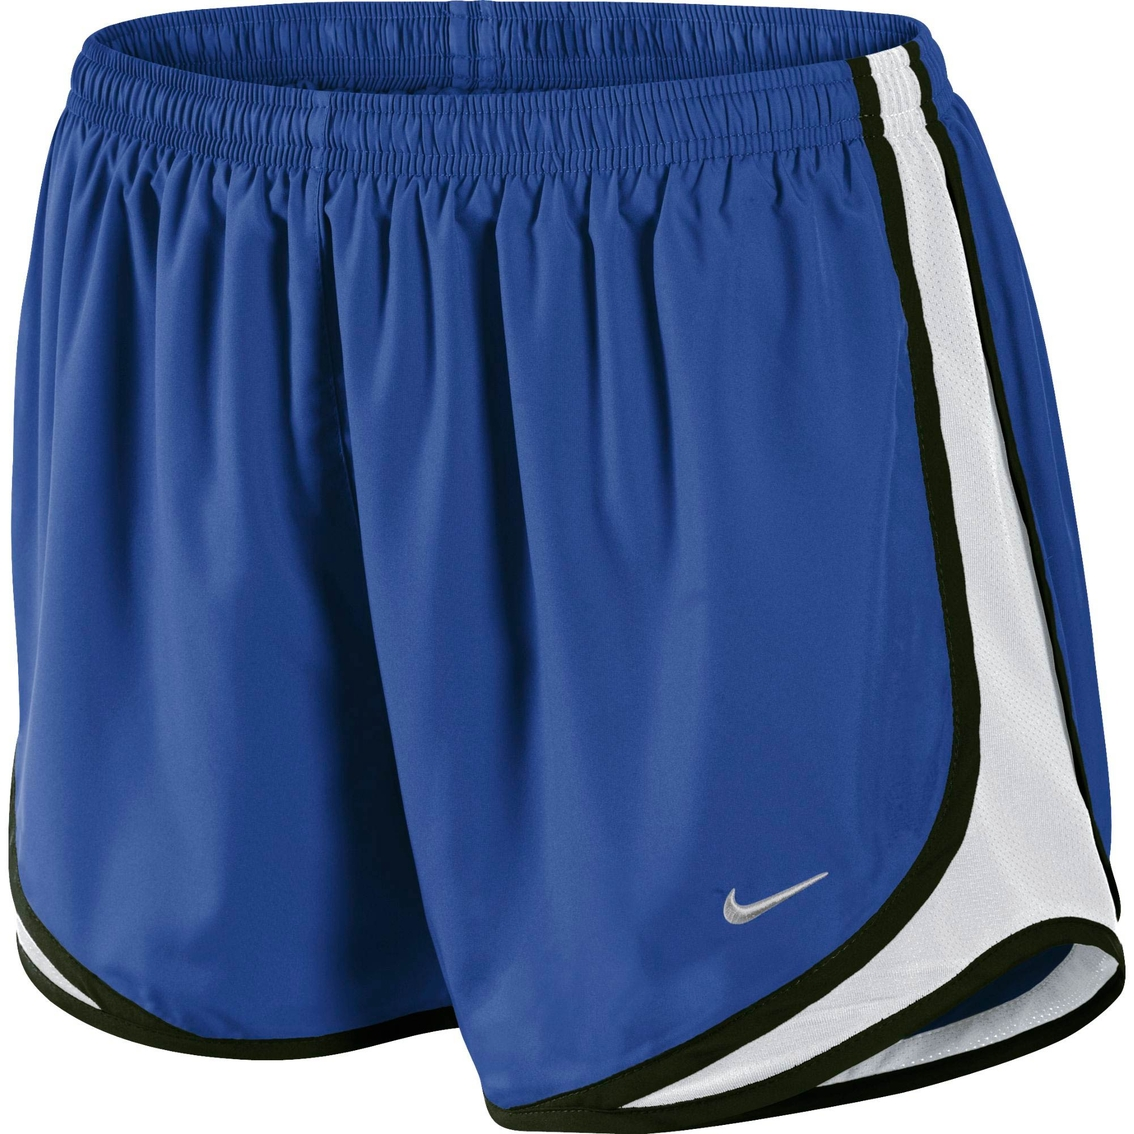 nike tempo track running shorts shorts apparel shop the exchange. Black Bedroom Furniture Sets. Home Design Ideas